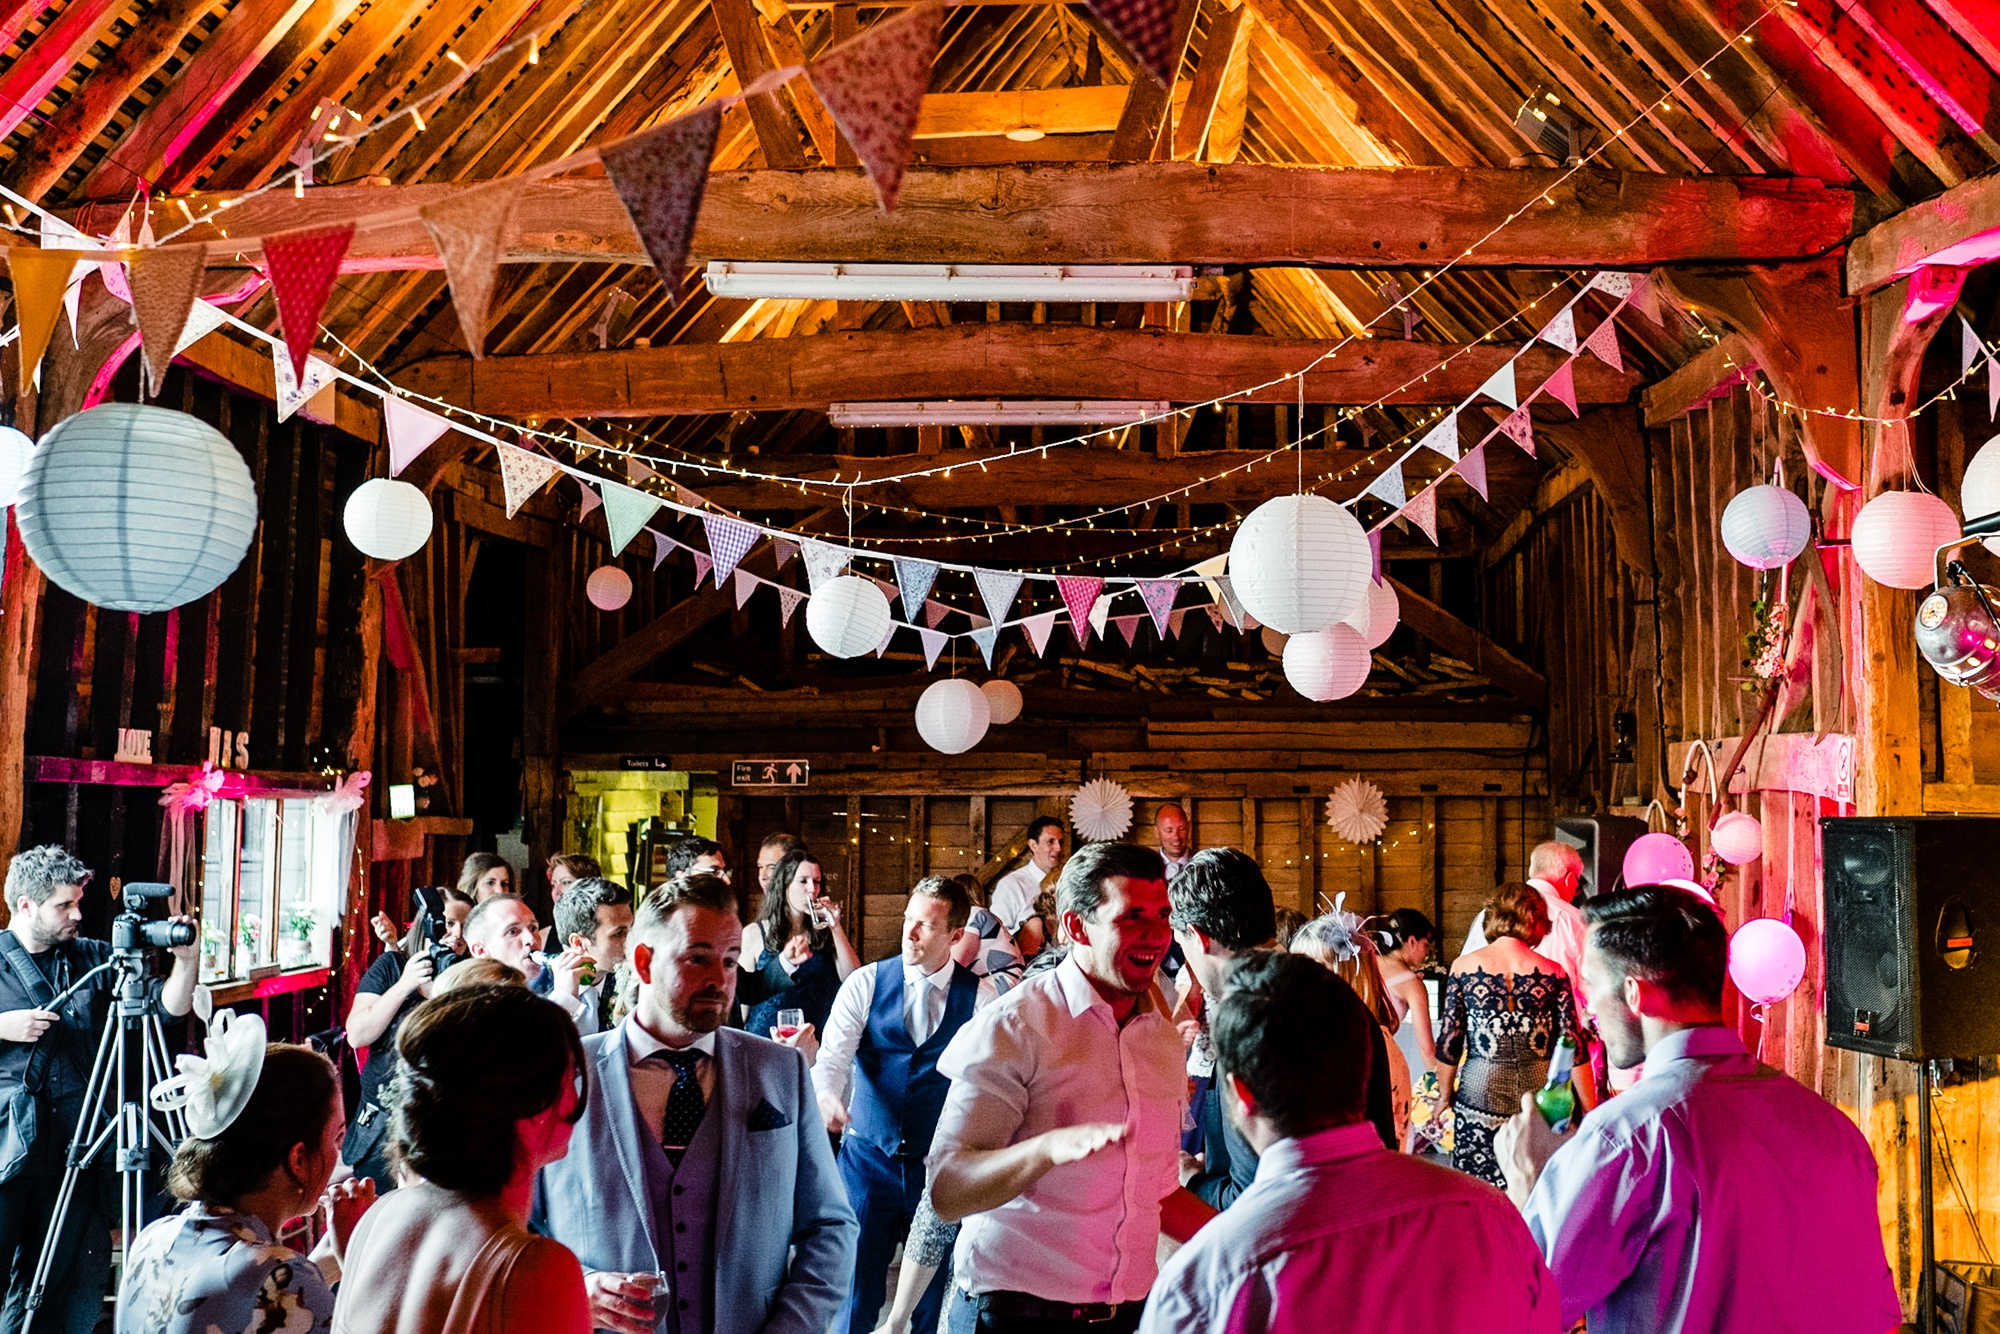 Essex Barn Upminster Wedding Photographer-198.jpg